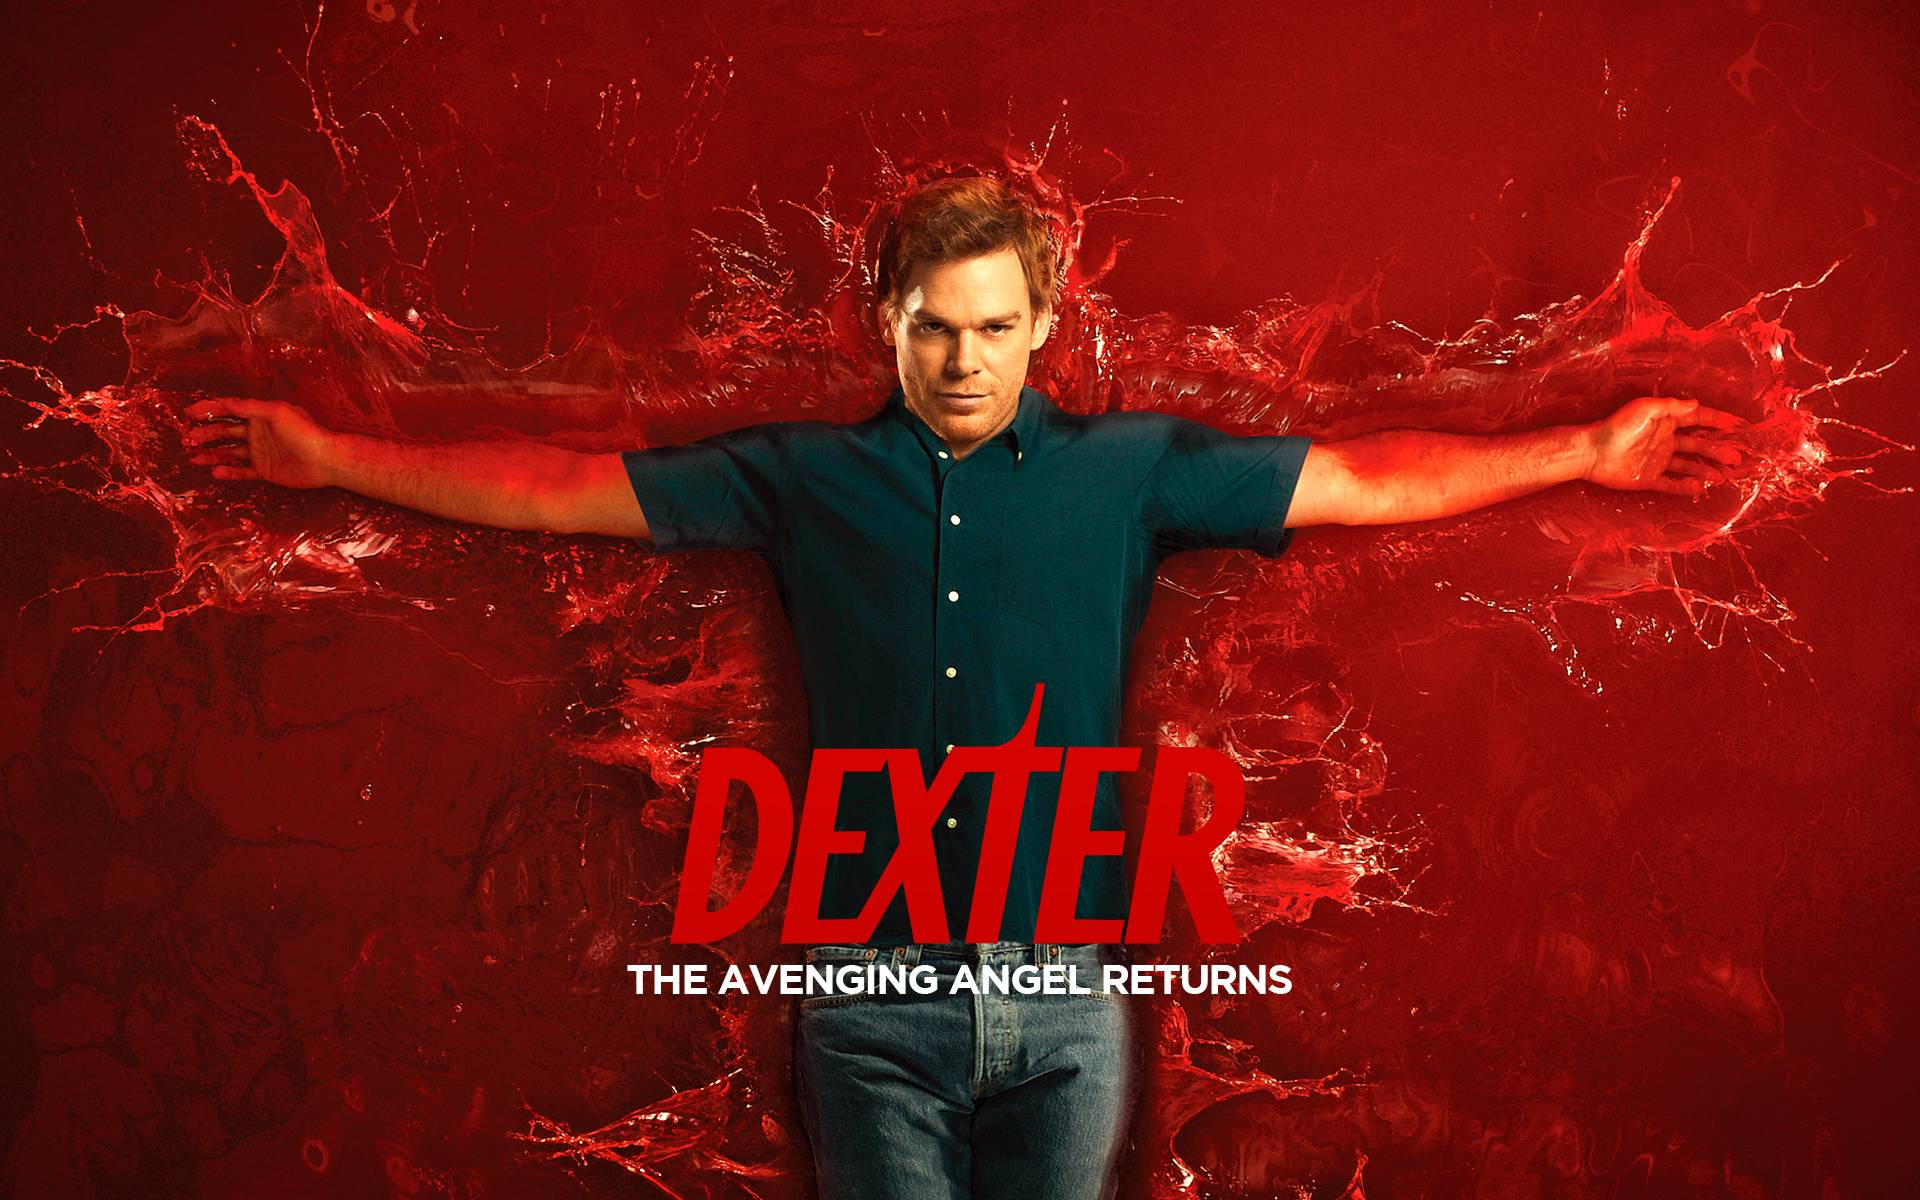 Dexter Wallpaper Hd - 1758158